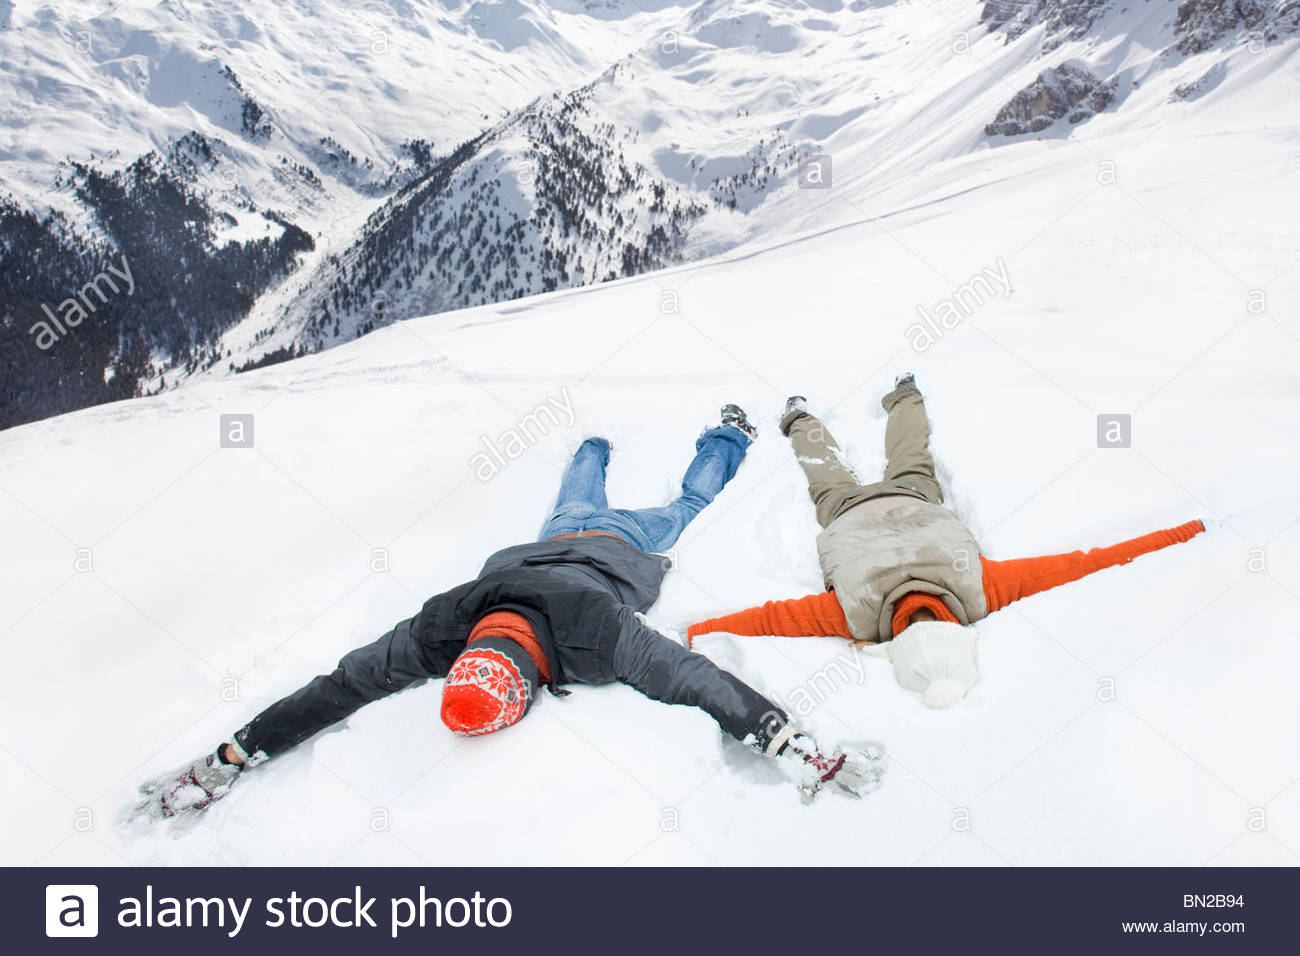 Couple anges de neige en montagne Photo Stock